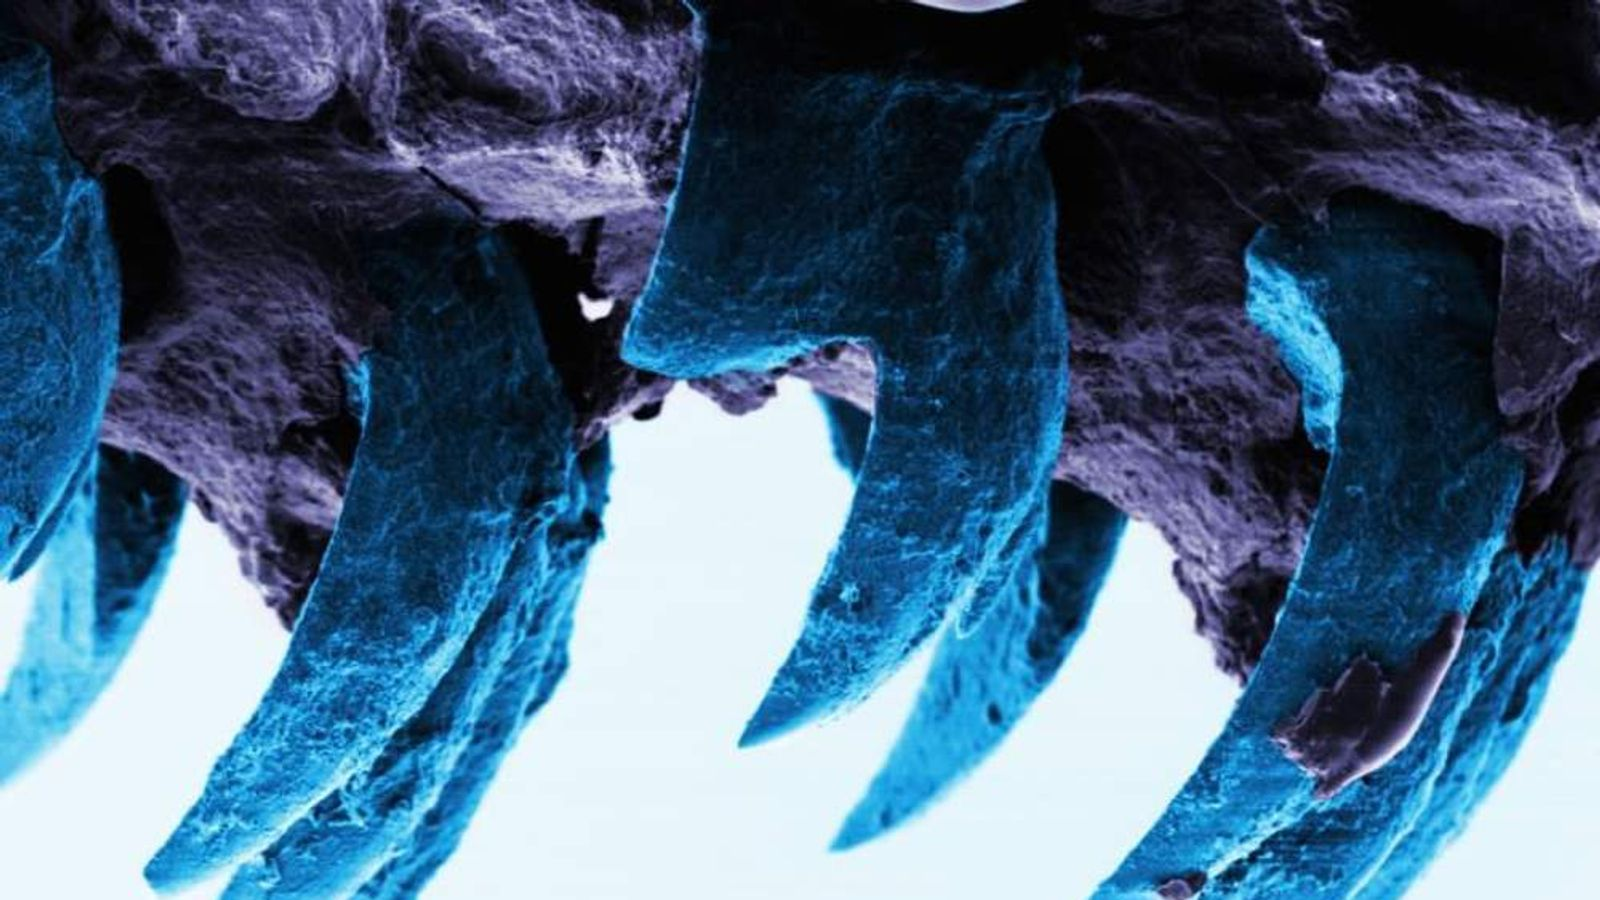 Limpet Teeth Image From University Of Portsmouth